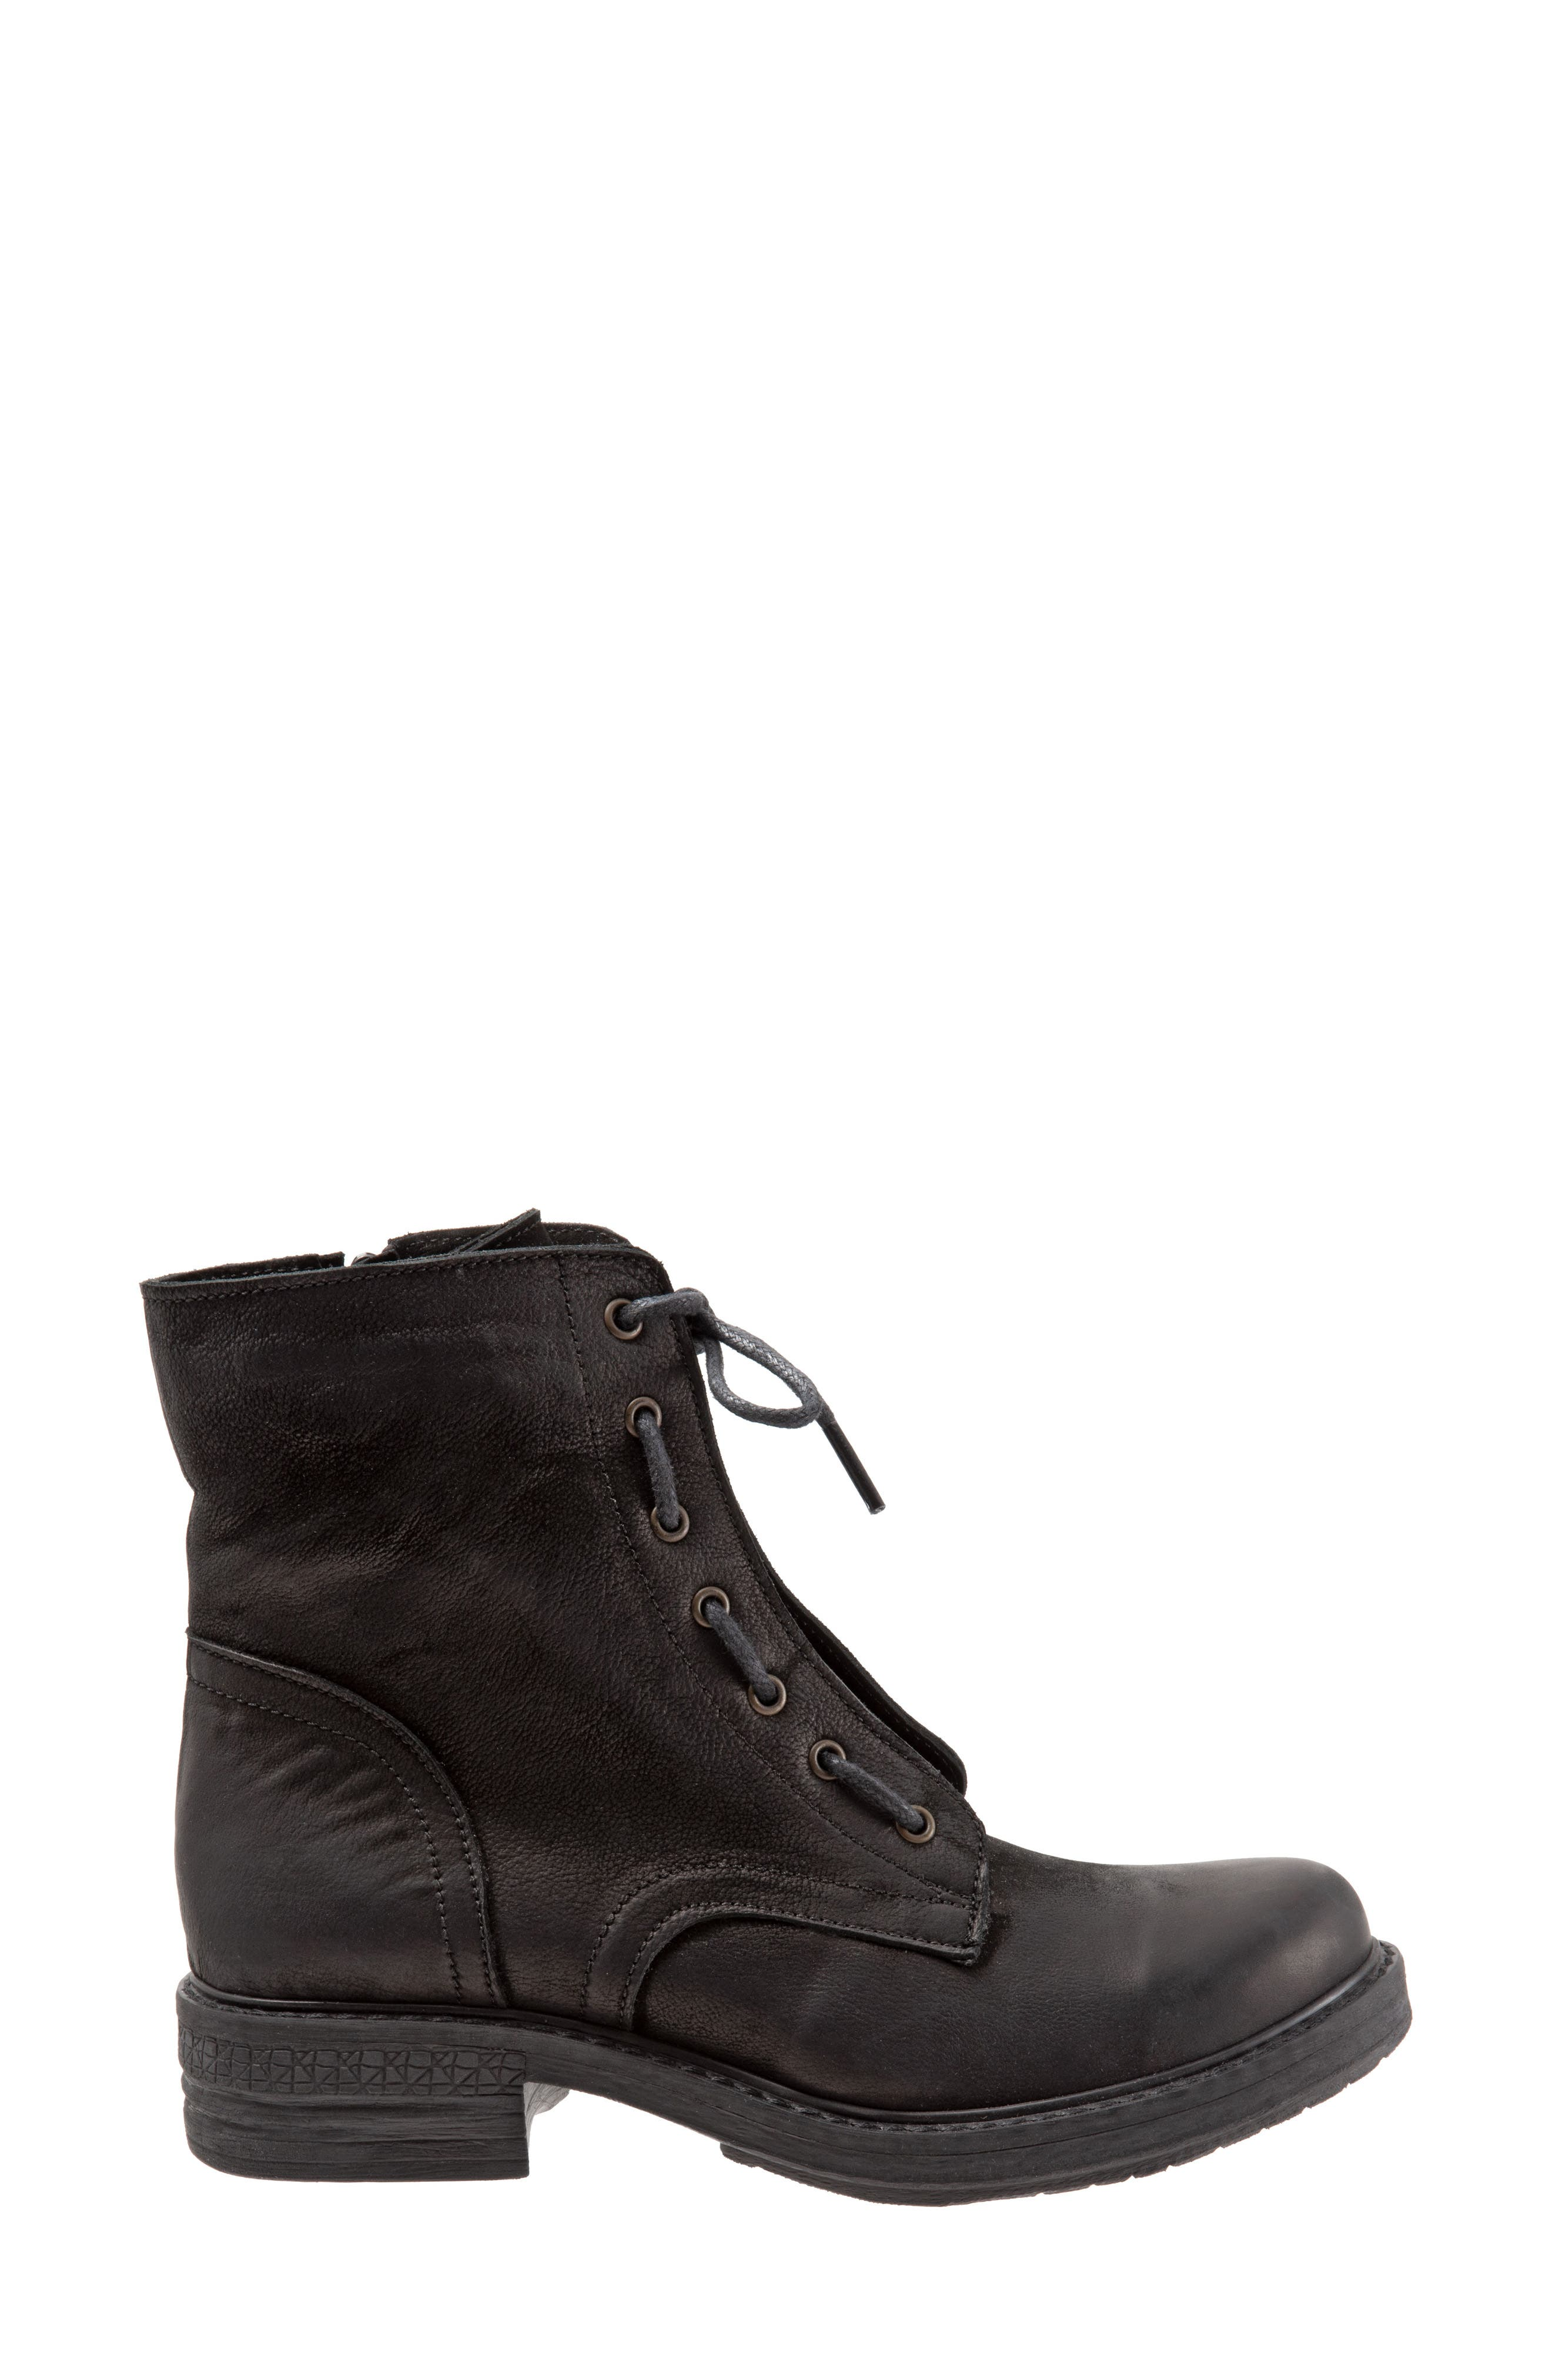 Getty Military Boot,                             Alternate thumbnail 3, color,                             BLACK NATURAL LEATHER